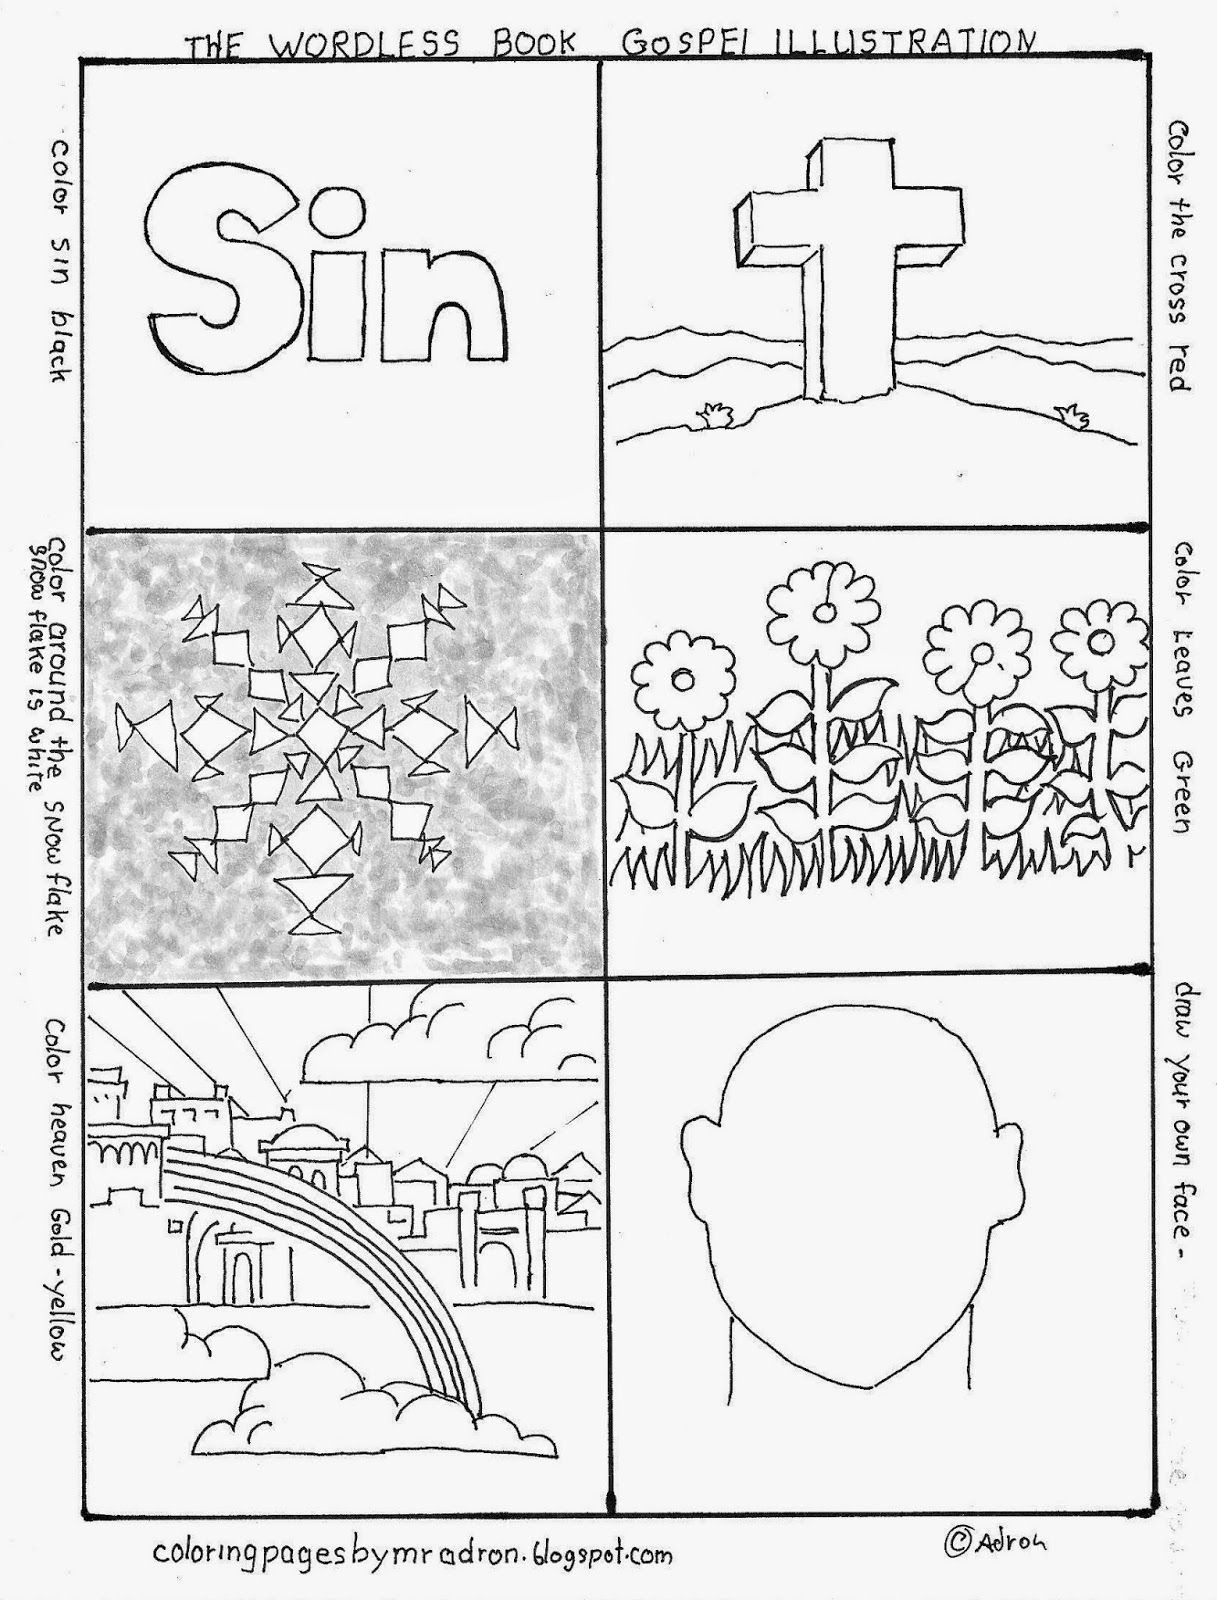 Coloring pages for preschoolers on salavation - Coloring Pages For Kids By Mr Adron Wordless Book Gospel Coloring Page Free